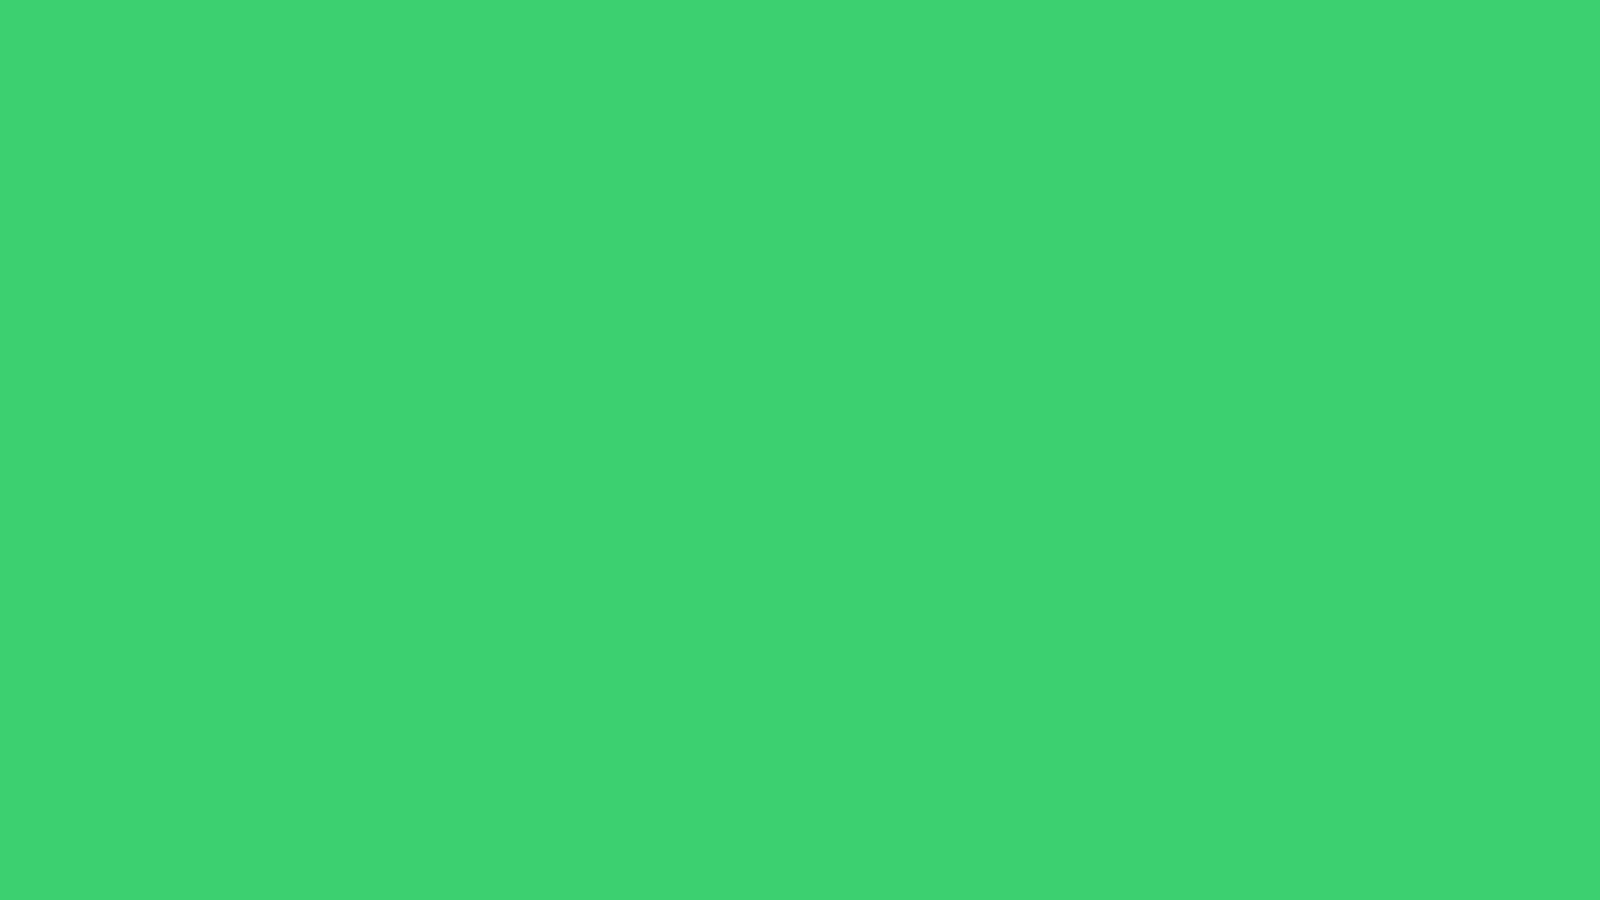 1600x900 UFO Green Solid Color Background